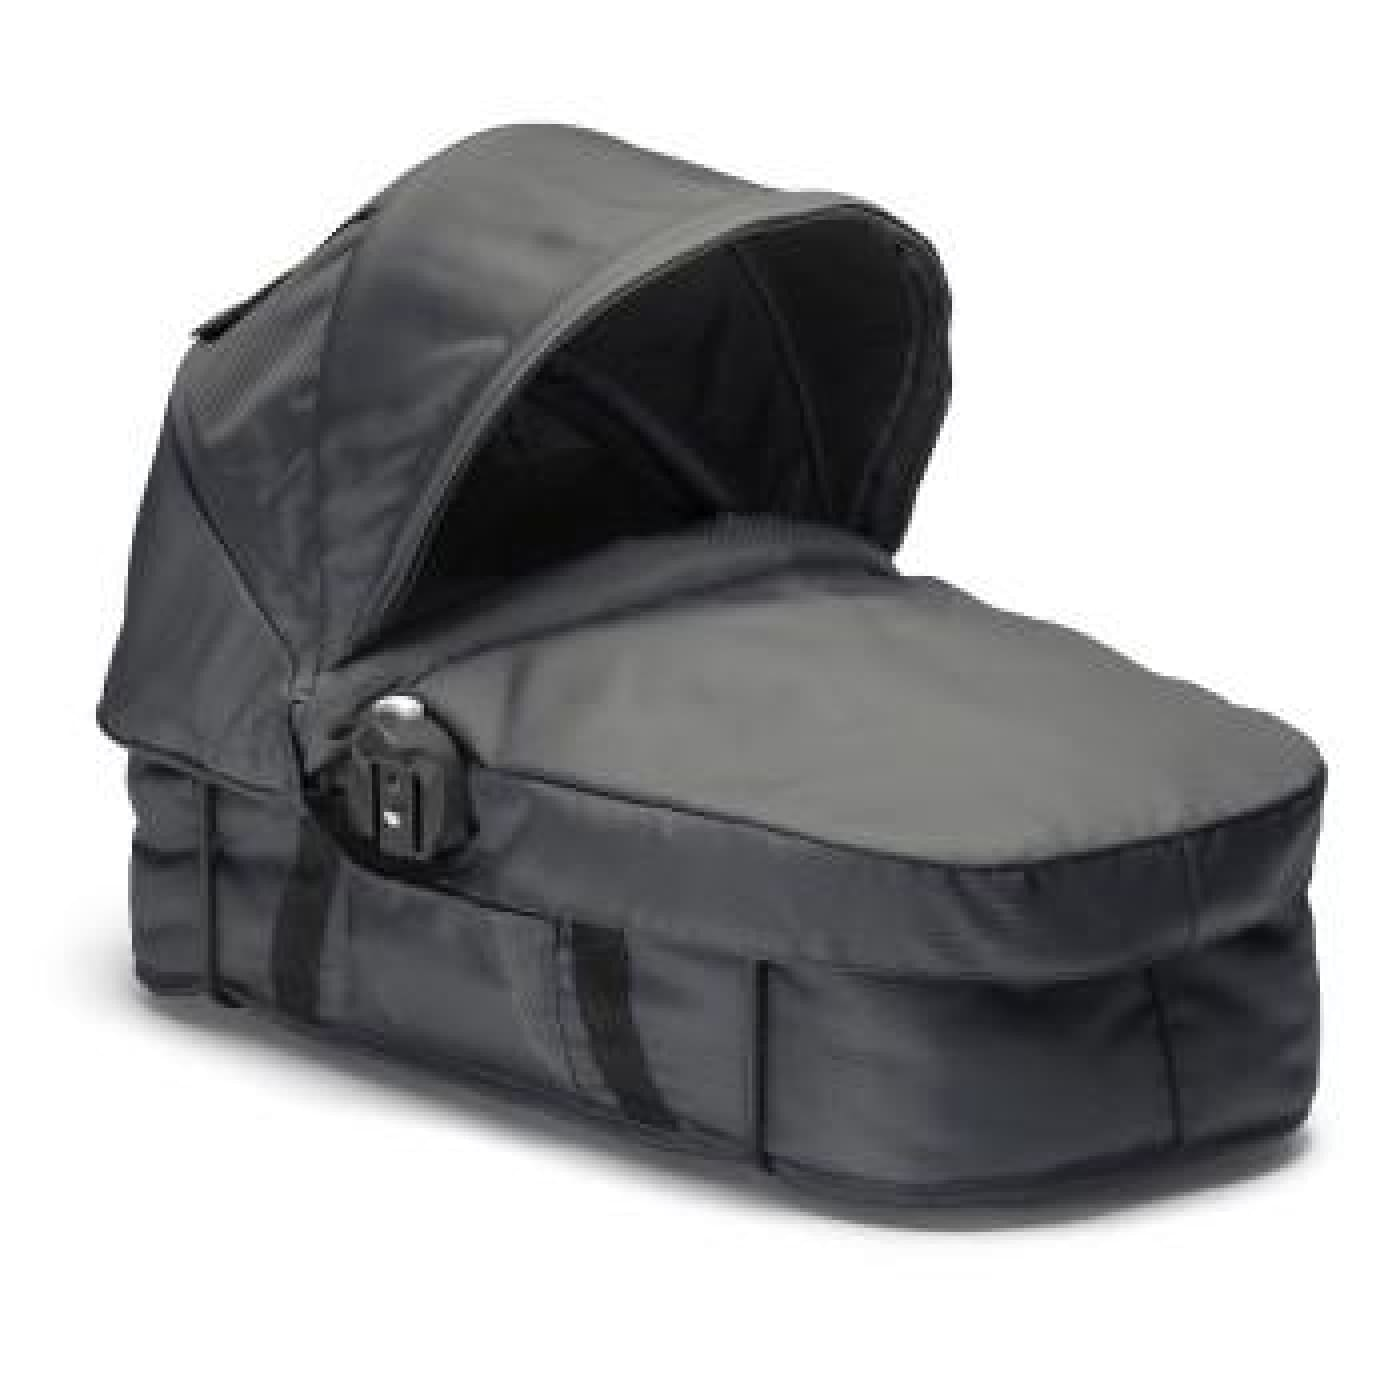 Baby Jogger City Select Bassinet Kit - Charcoal - PRAMS & STROLLERS - BASS/CARRY COTS/STANDS